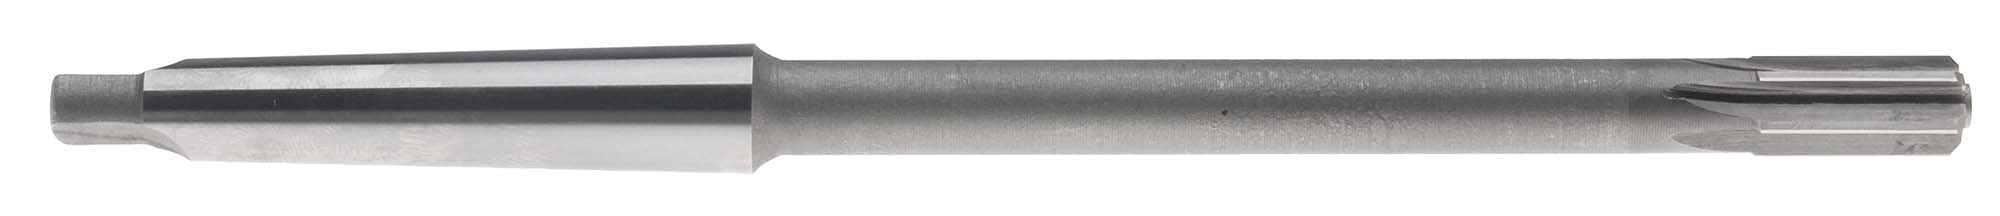 "2-7/16"" Expanding Machine Reamer, Taper Shank, High Speed Steel"